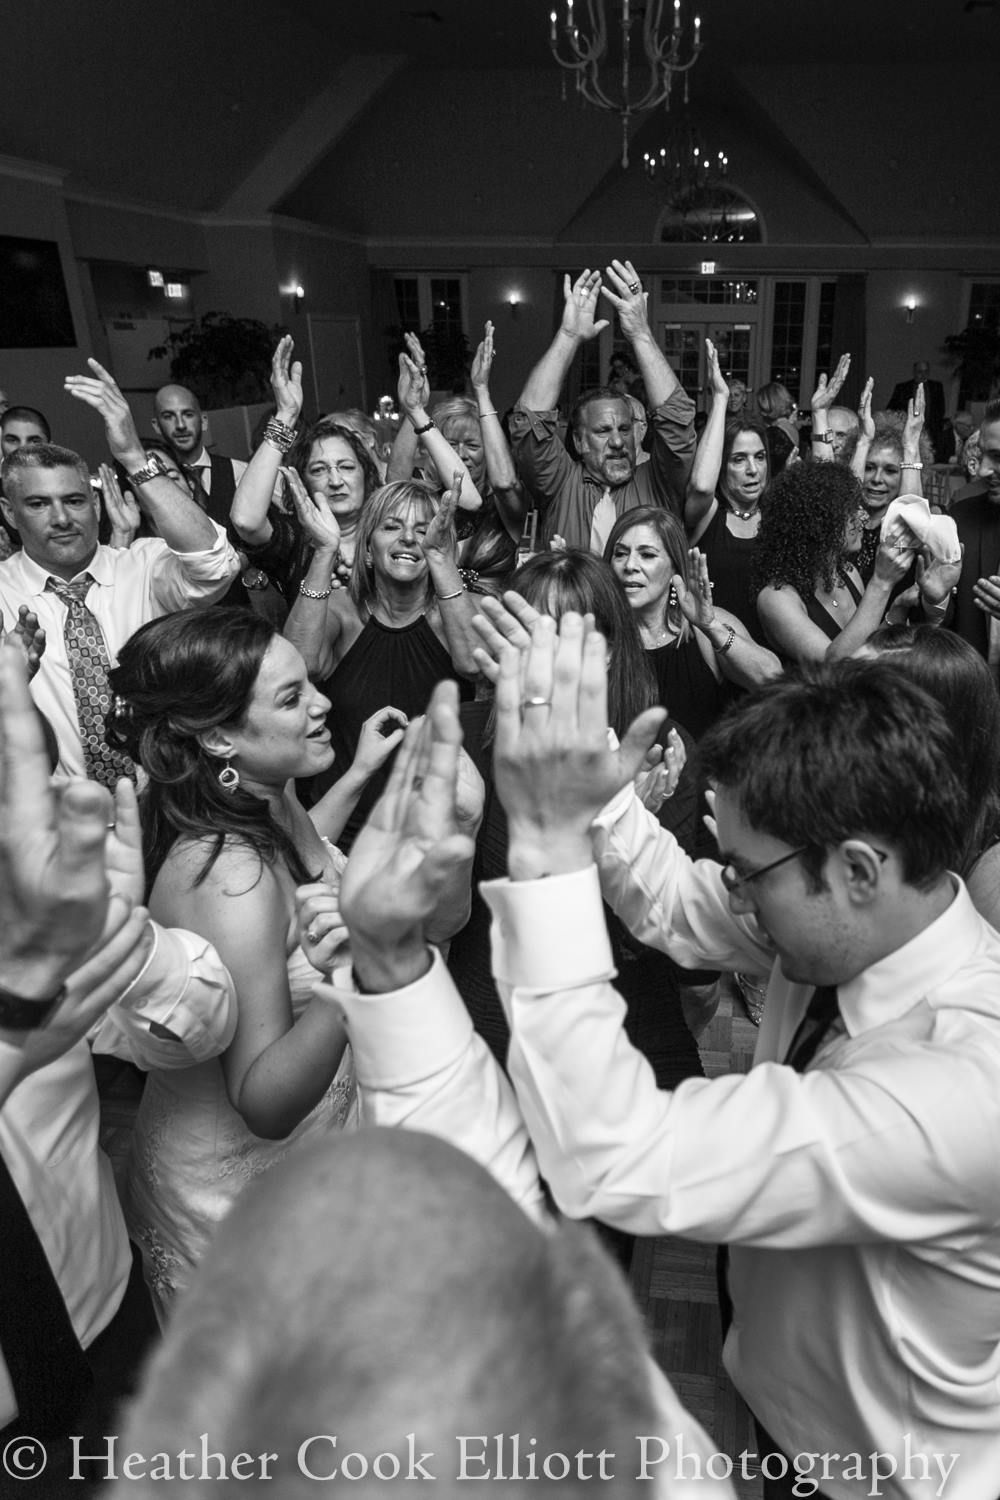 Crowded Dance Floor Makes For Great Wedding Receptions In Chicago Chicagoweddingband